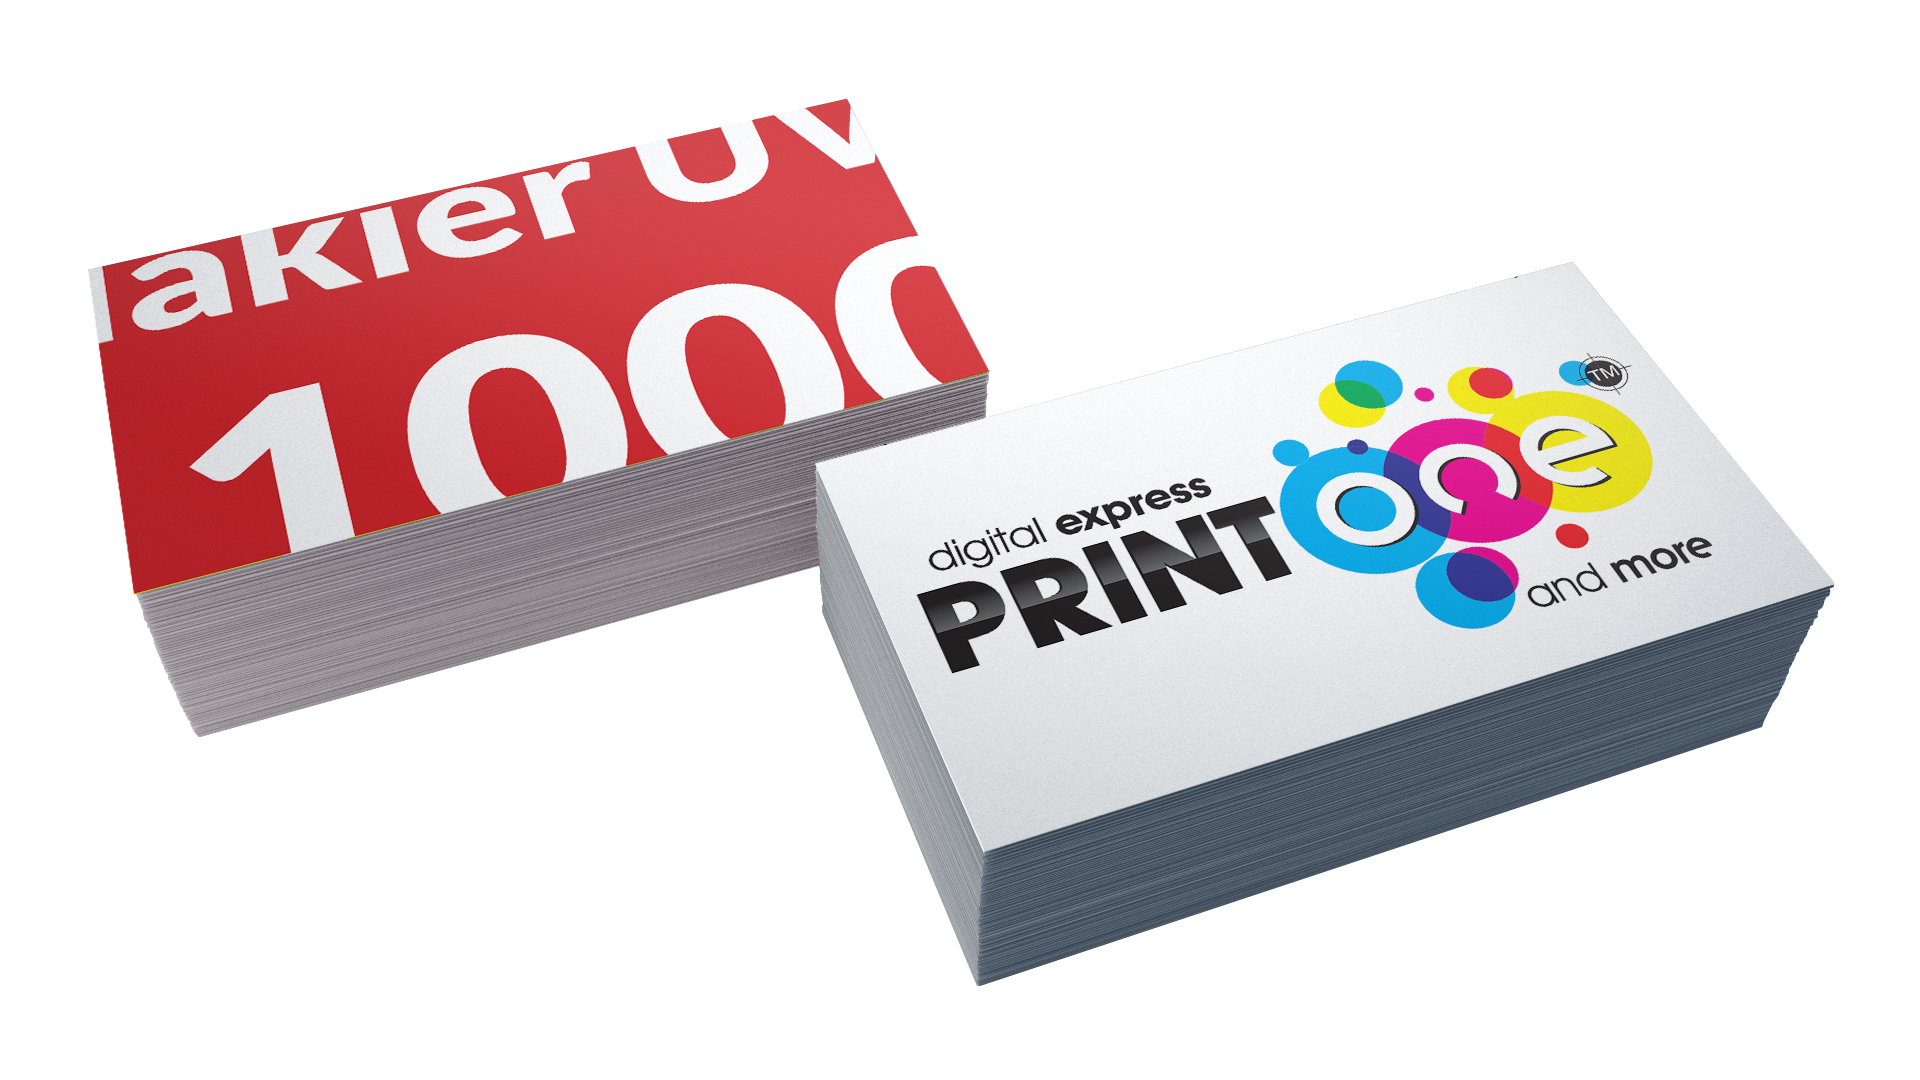 Item Business CARDS 1000 2x FILM + 2x UV LACQUER + DESIGN